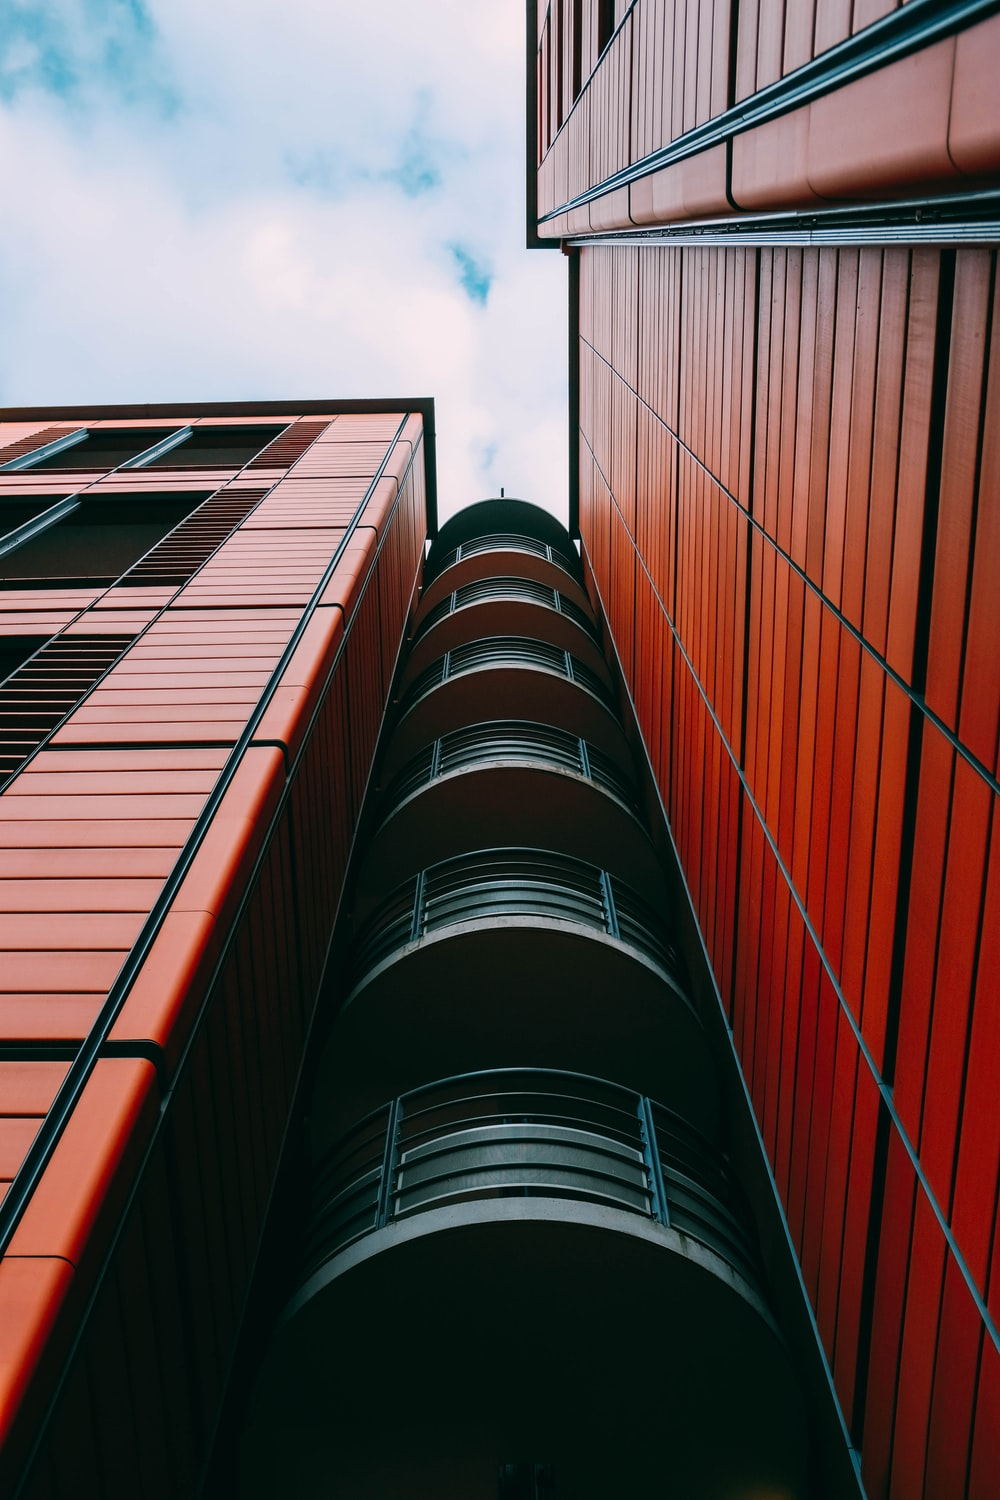 black and red building under blue sky